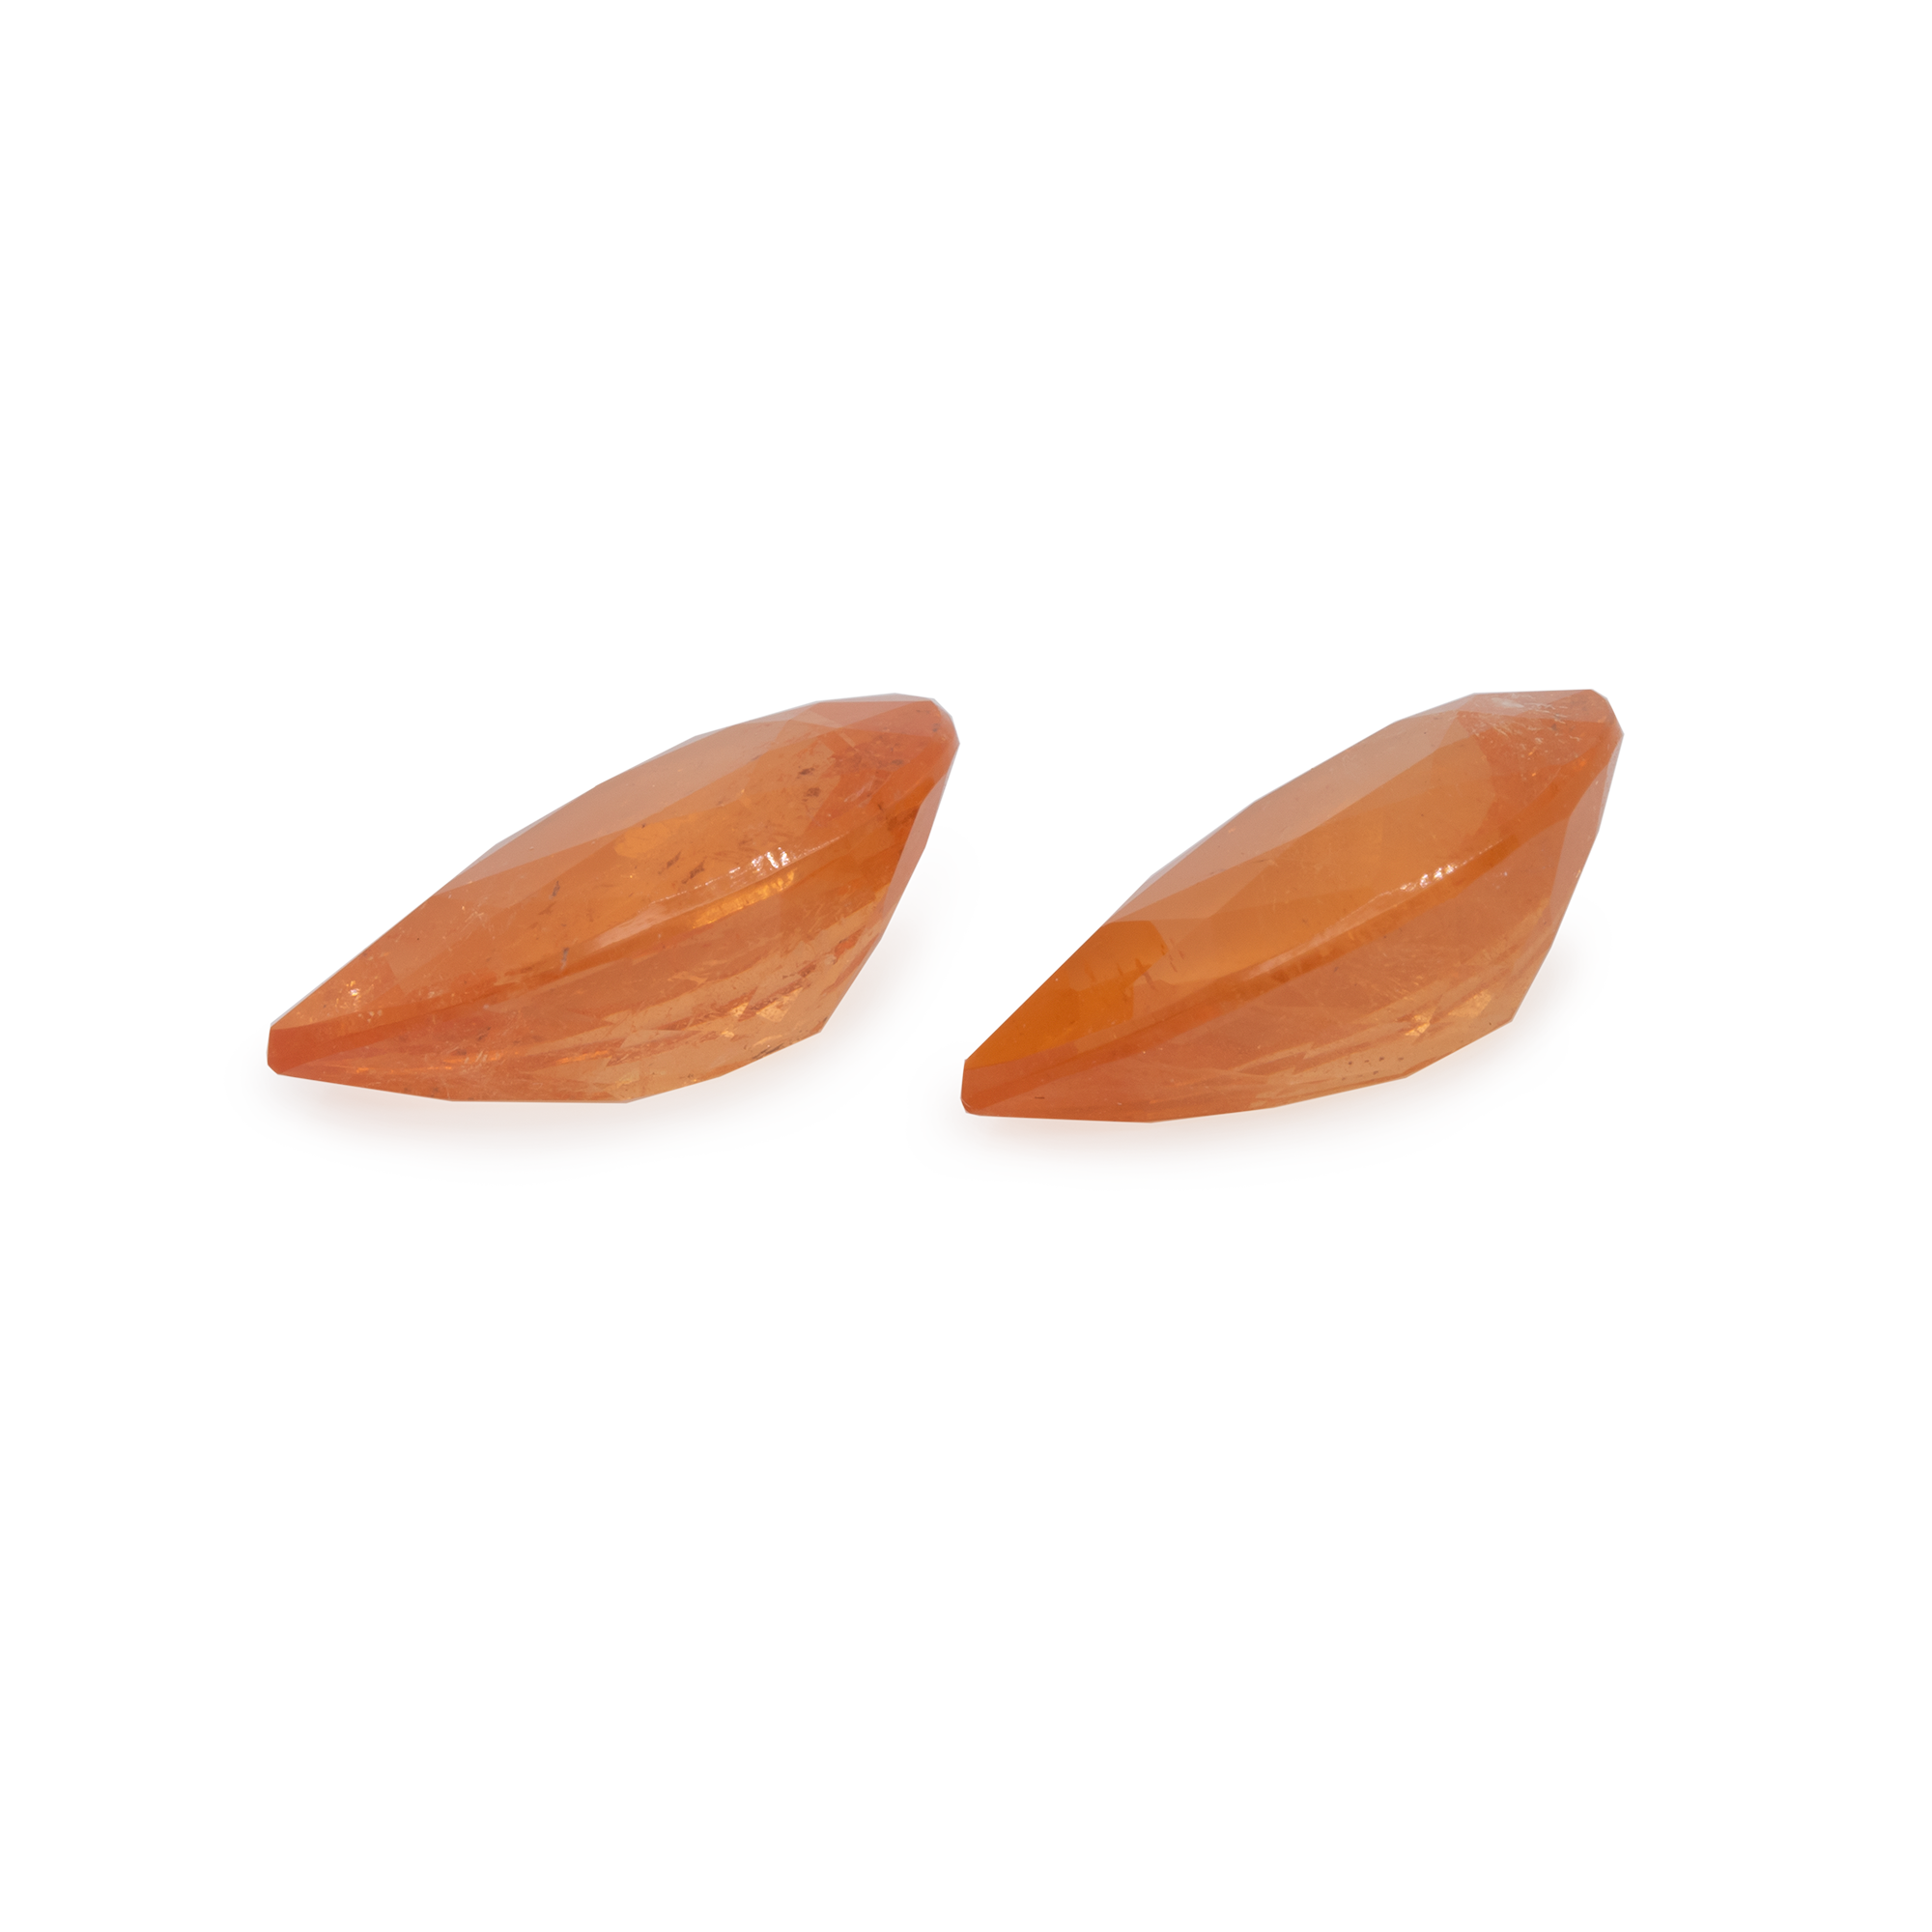 Mandarin Granat Paar - hell orange, birnform, 12x8 mm, 6,94 cts, Nr. MG27003